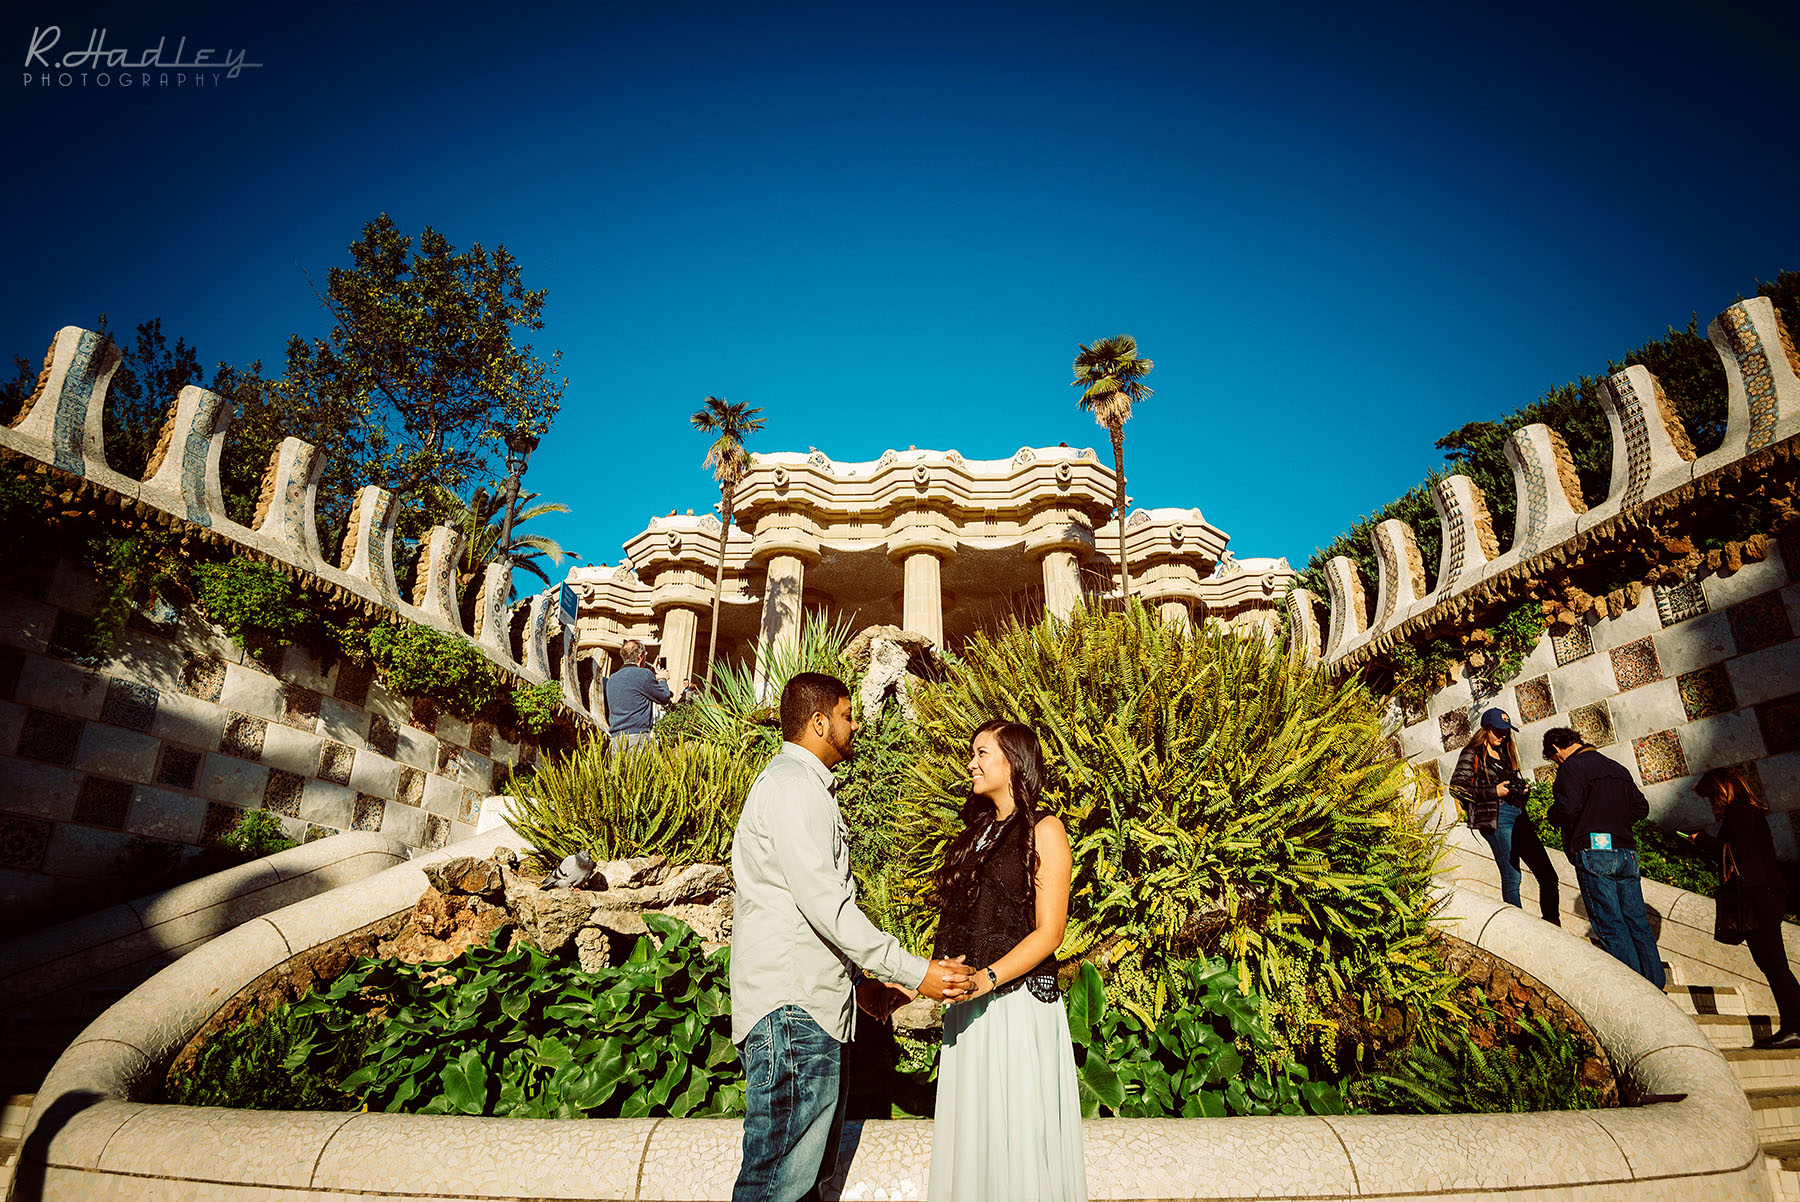 Engagement photo shoot in Park Guell, Barcelona